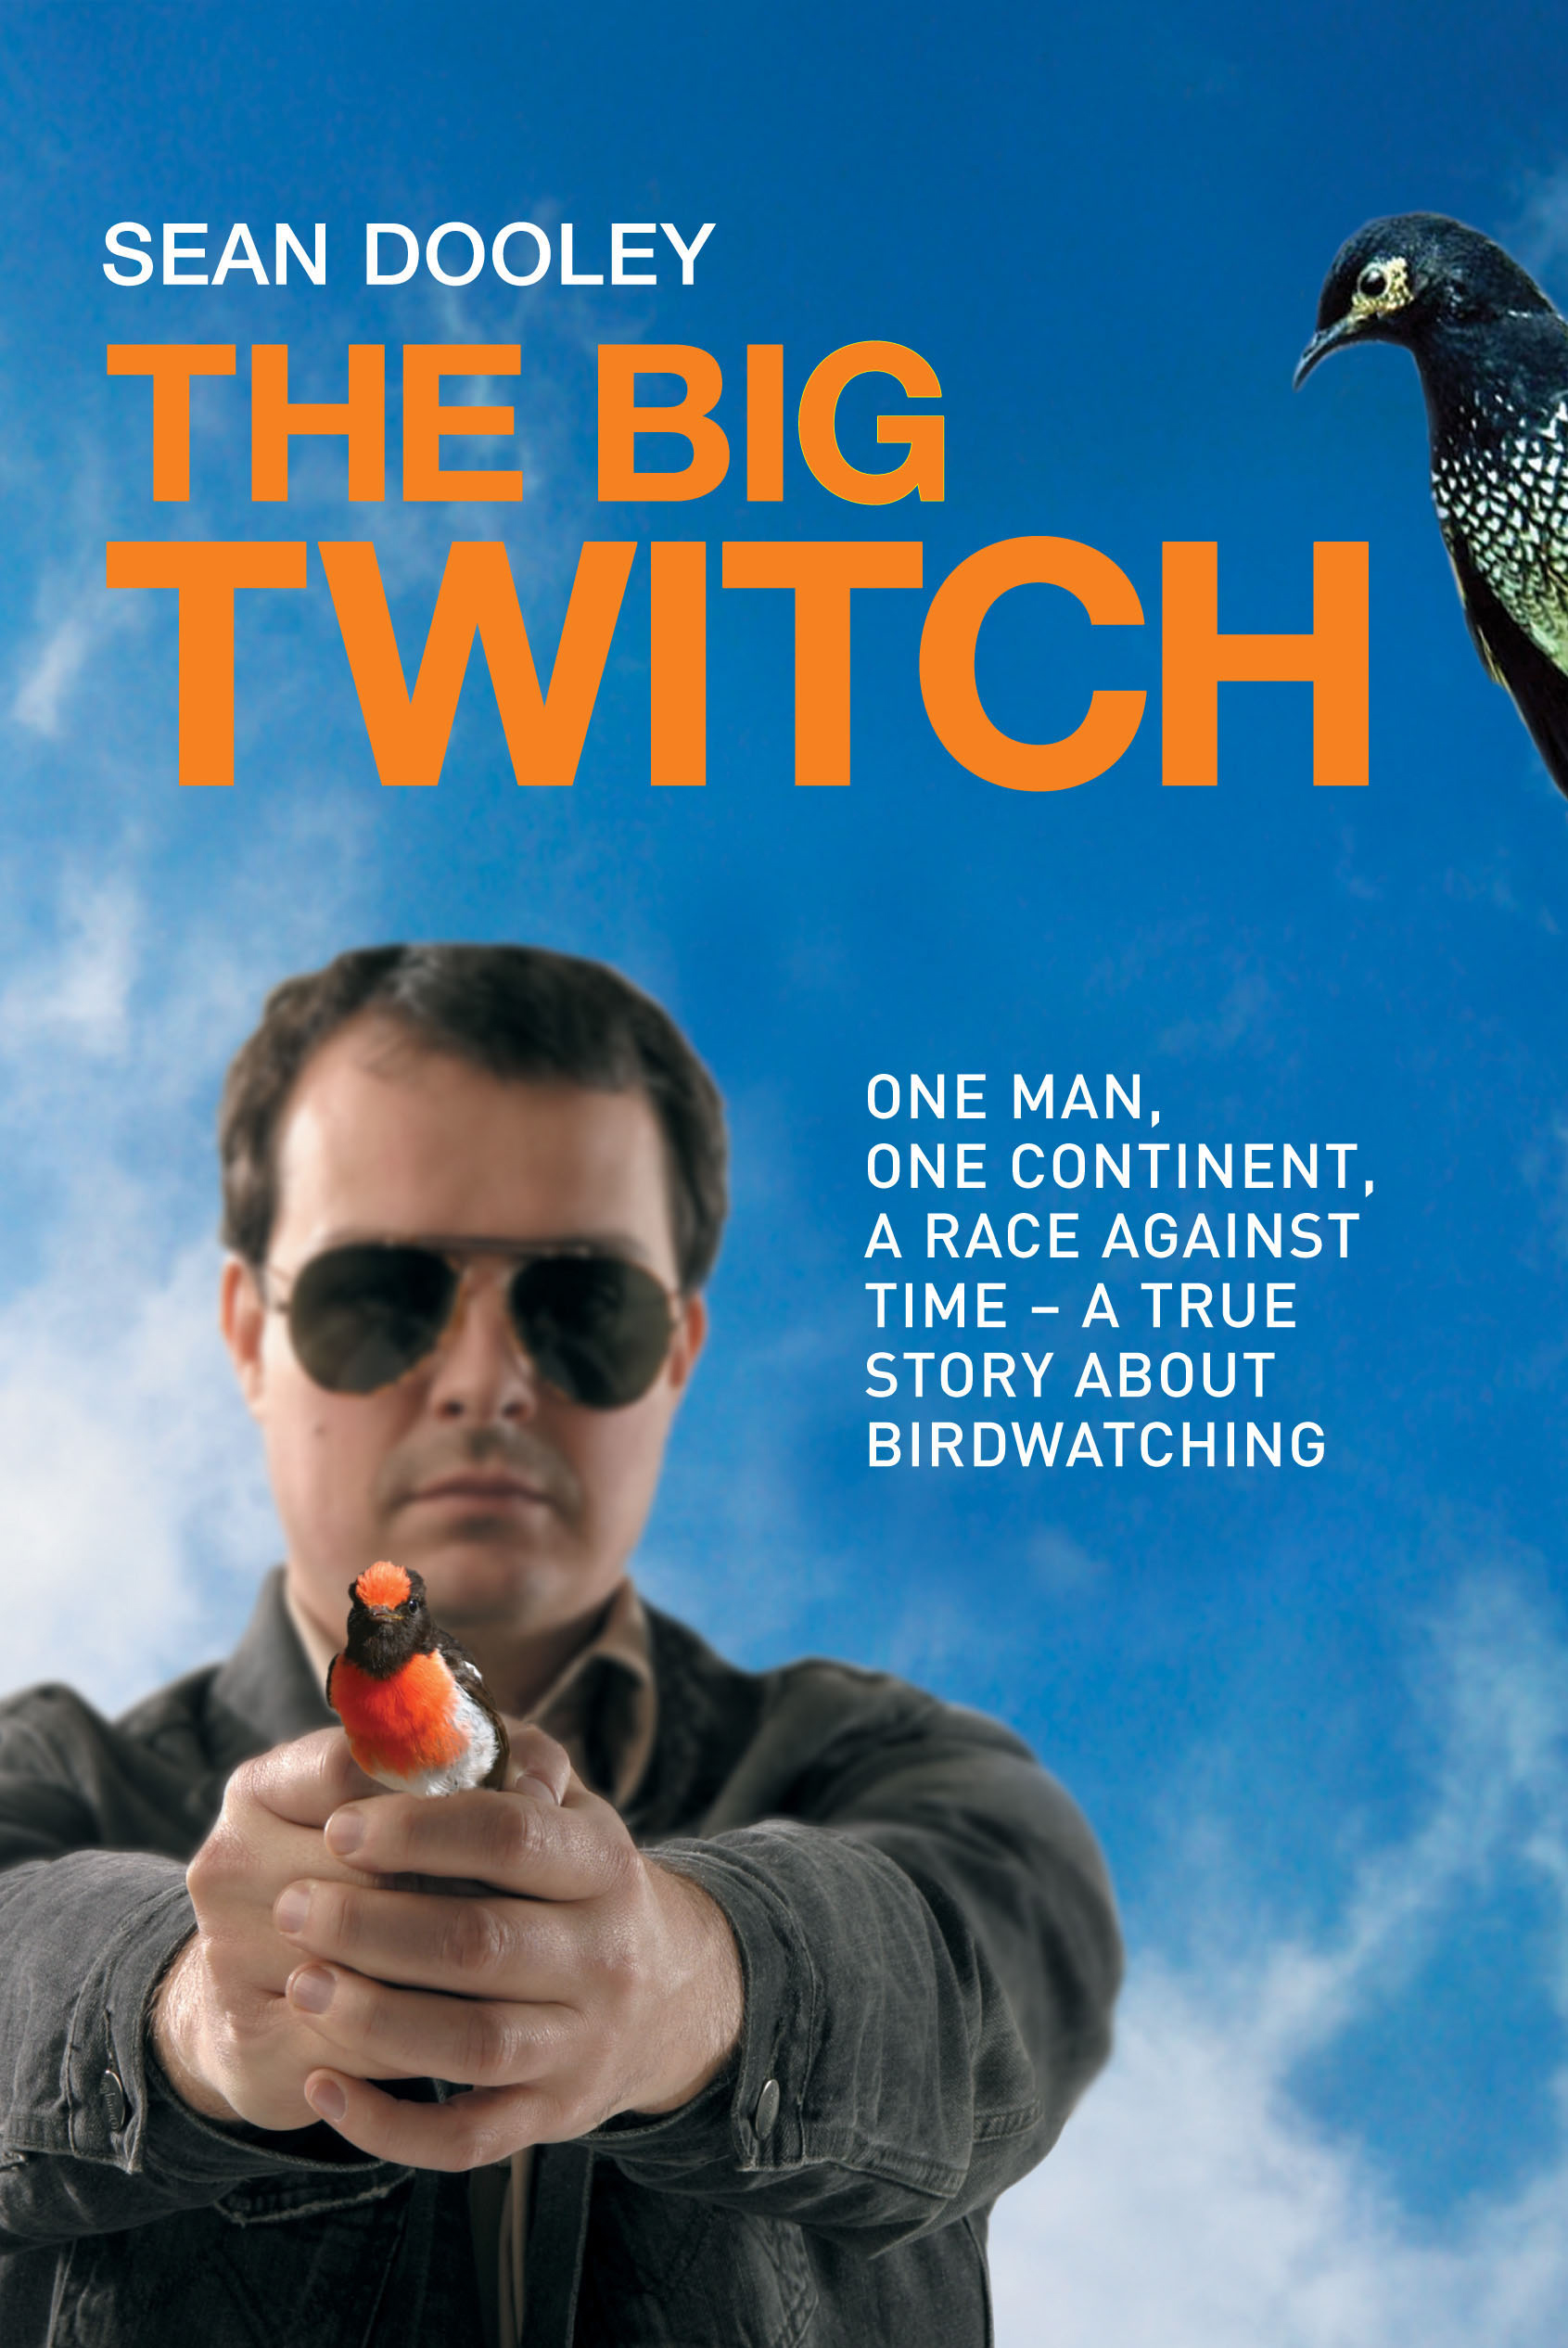 The Big Twitch by Sean Dooley, ISBN: 9781741145281